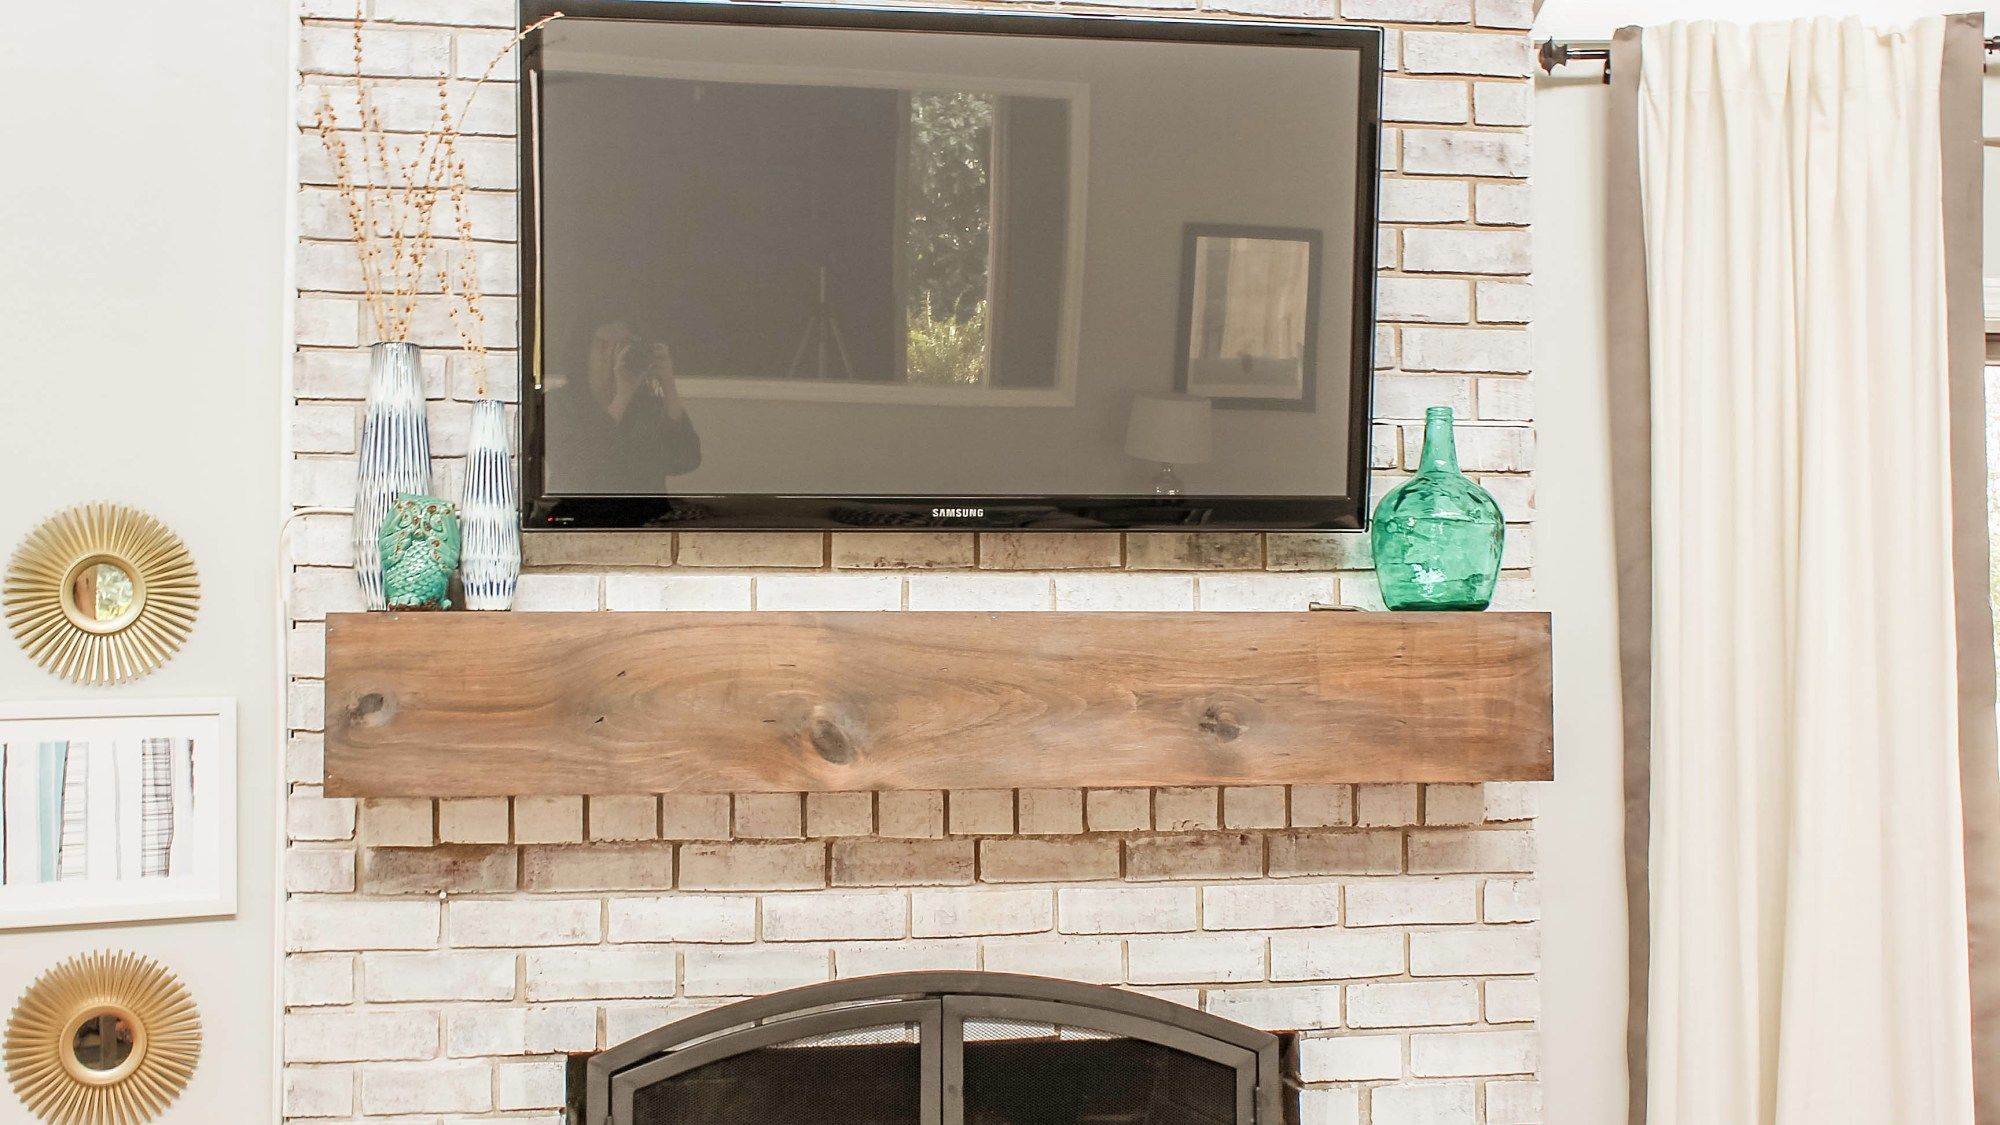 How To Mount A Tv Over A Brick Fireplace And Hide The Wires